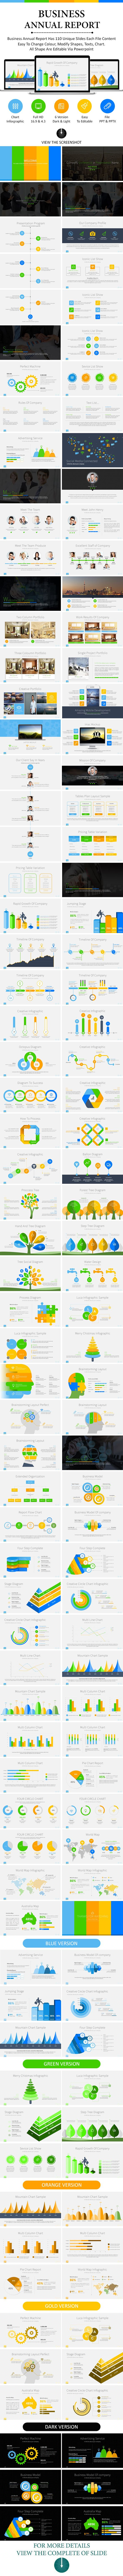 Business Annual Report Powerpoint Template #powerpoint #powerpointtemplate #presentation Download: http://graphicriver.net/item/business-annual-report-powerpoint-template/9535193?ref=ksioks